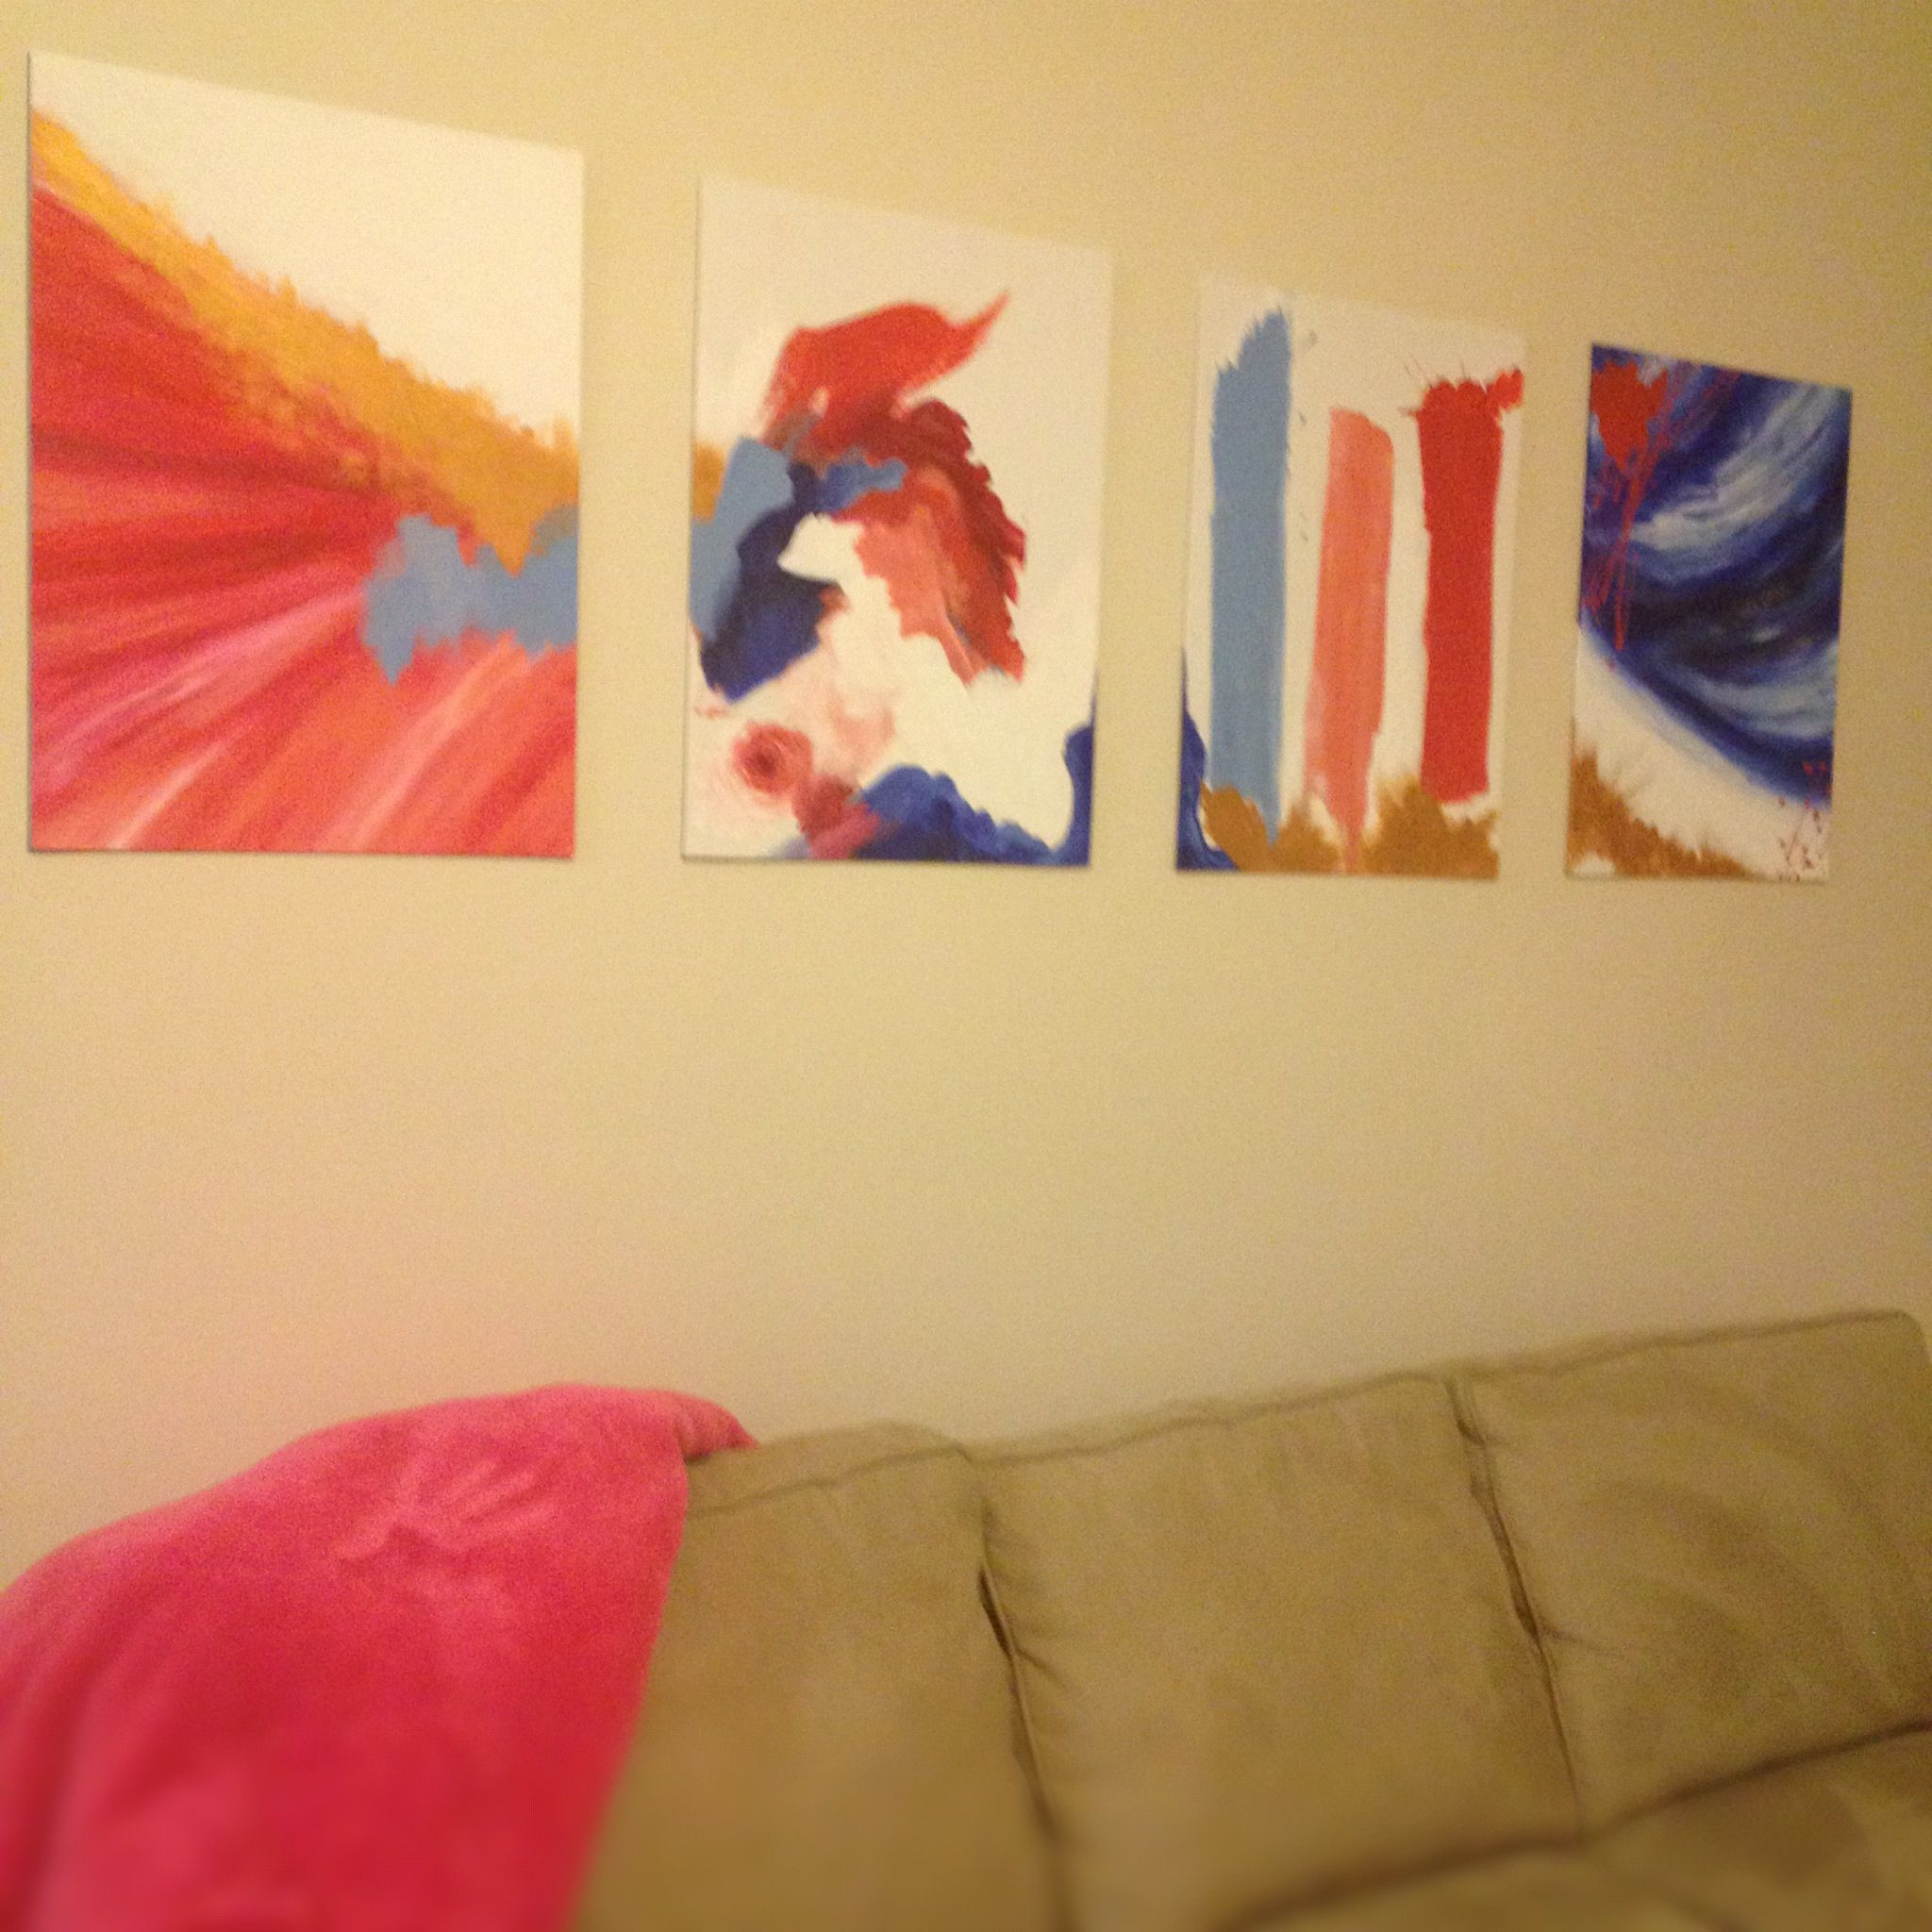 Colorful Easy Diy Wall Art Painting Ideas - The Wall Art Decorations ...